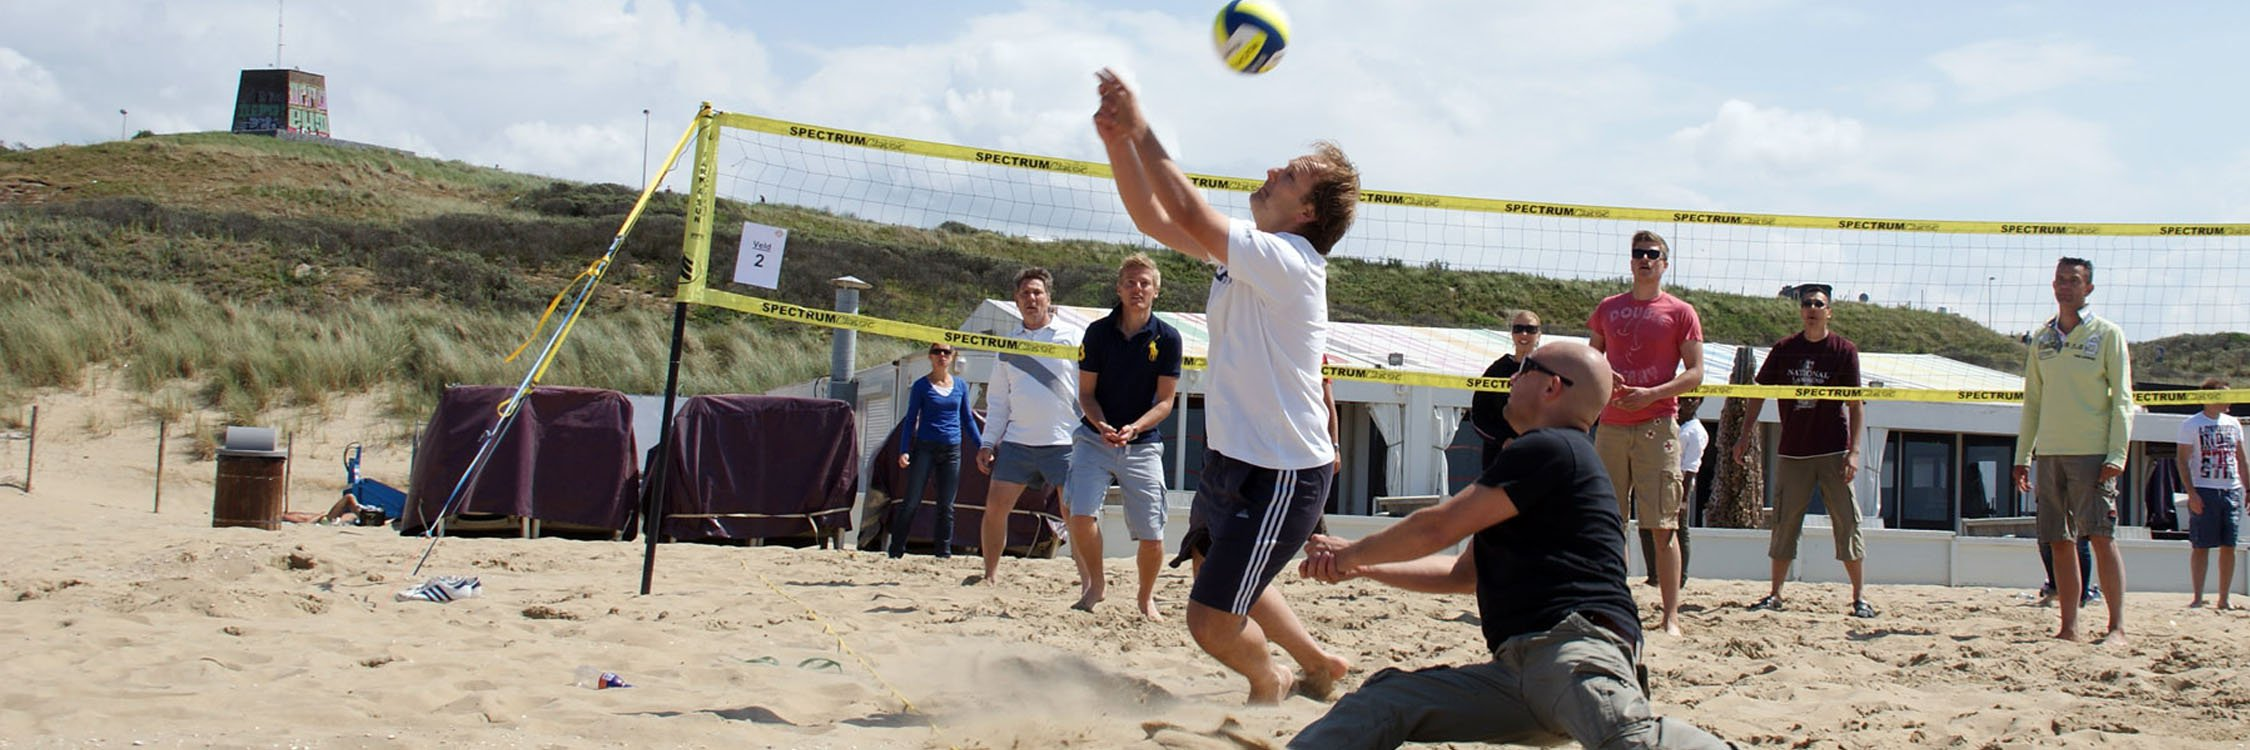 BeachClassics SubCategorie-beachvolley.jpg